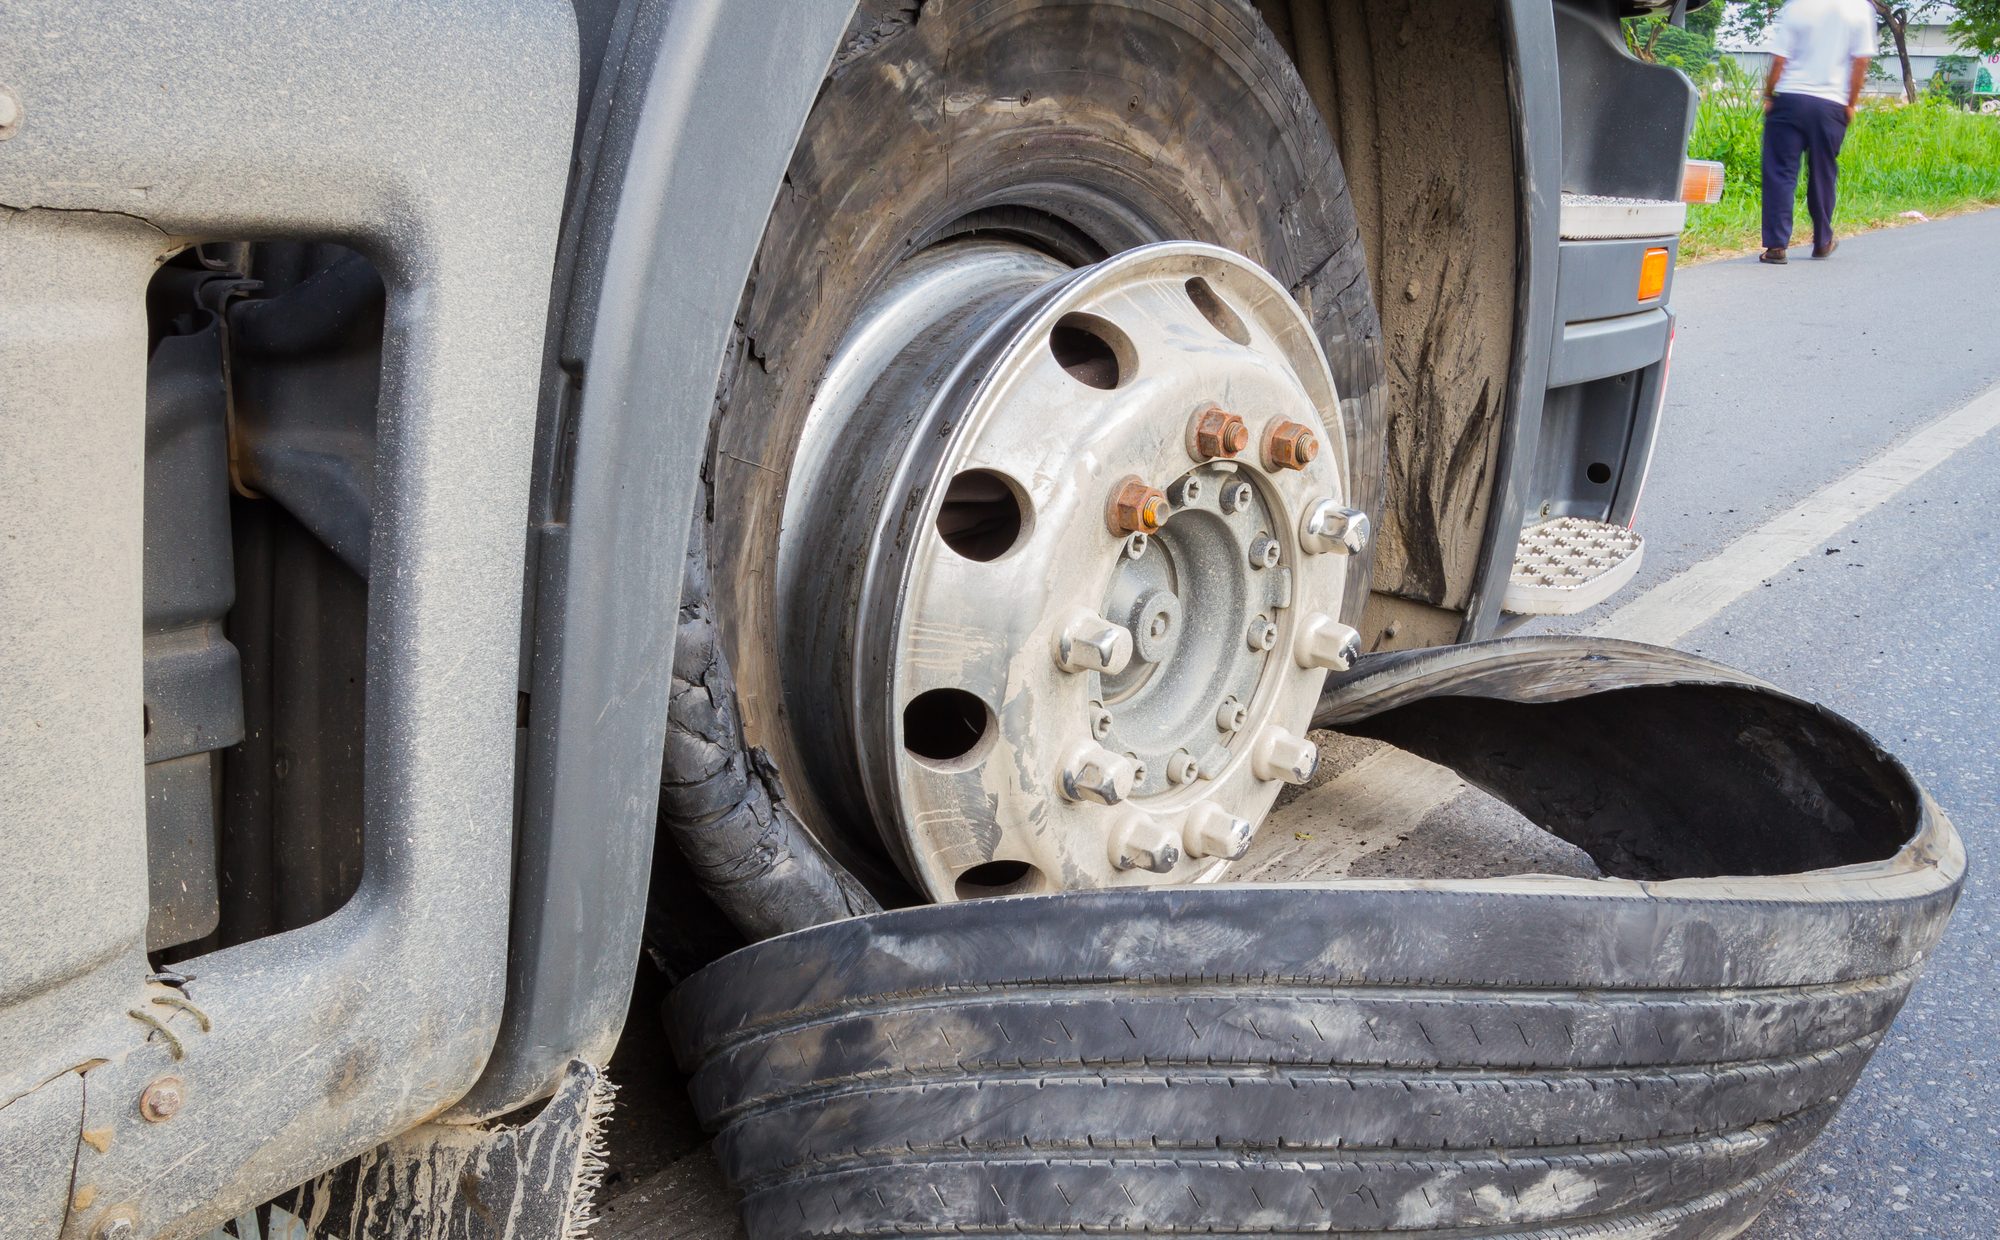 A tire blowout